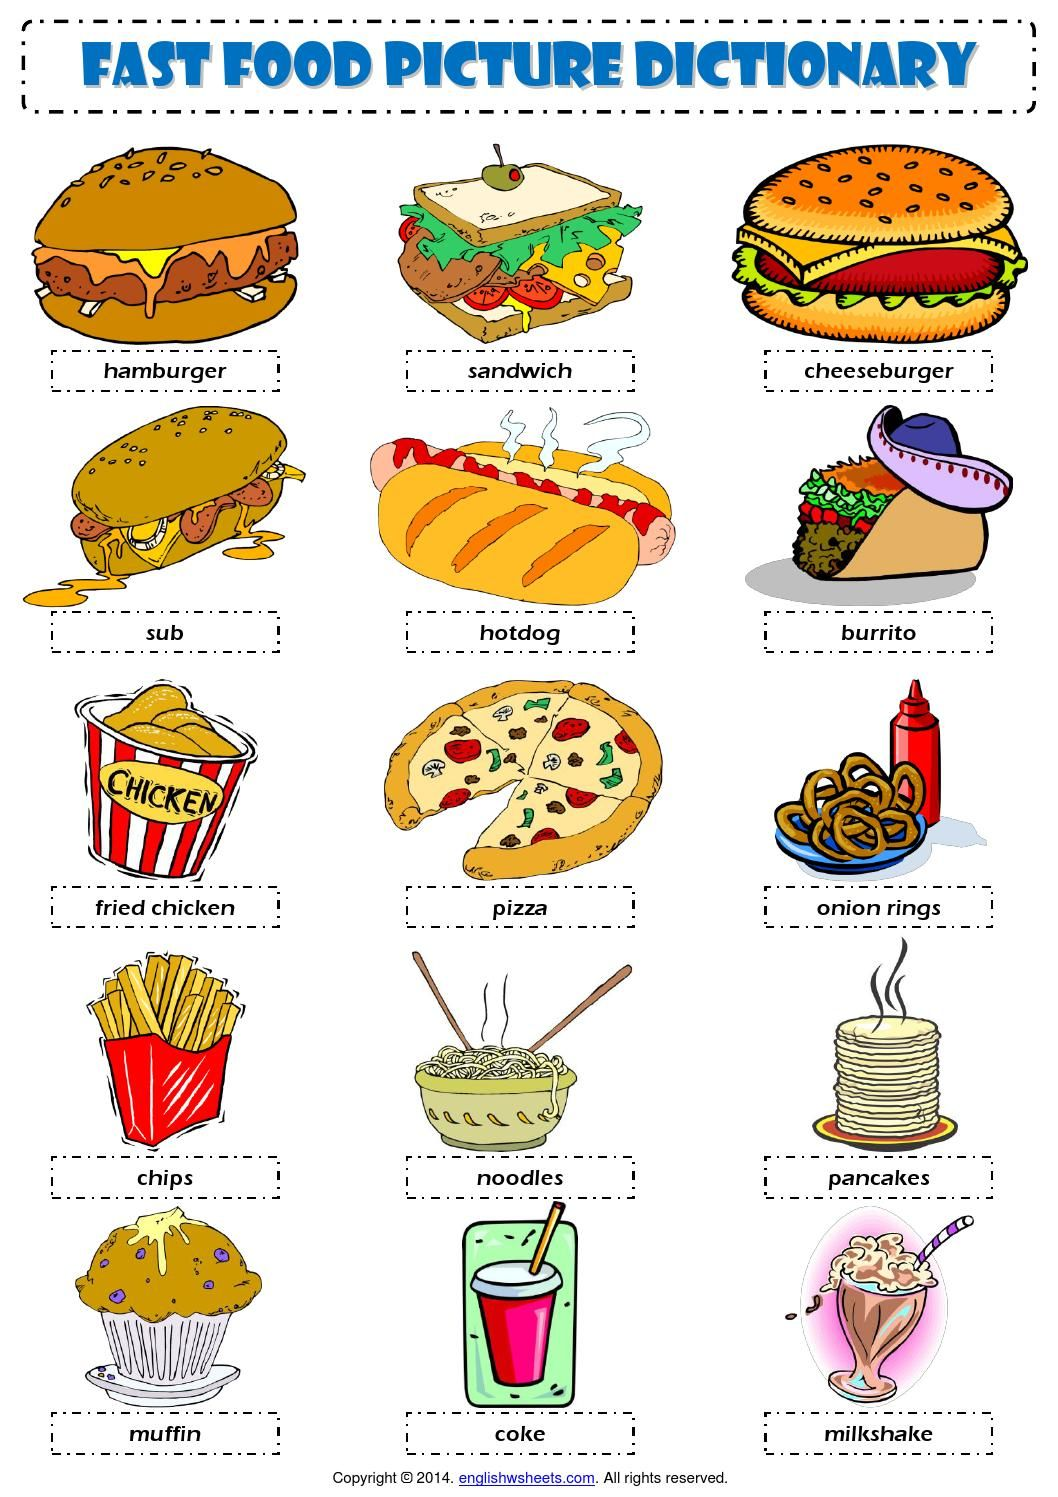 Workbooks spanish food worksheets : English Vocabulary - fast food - | English, English vocabulary and ...